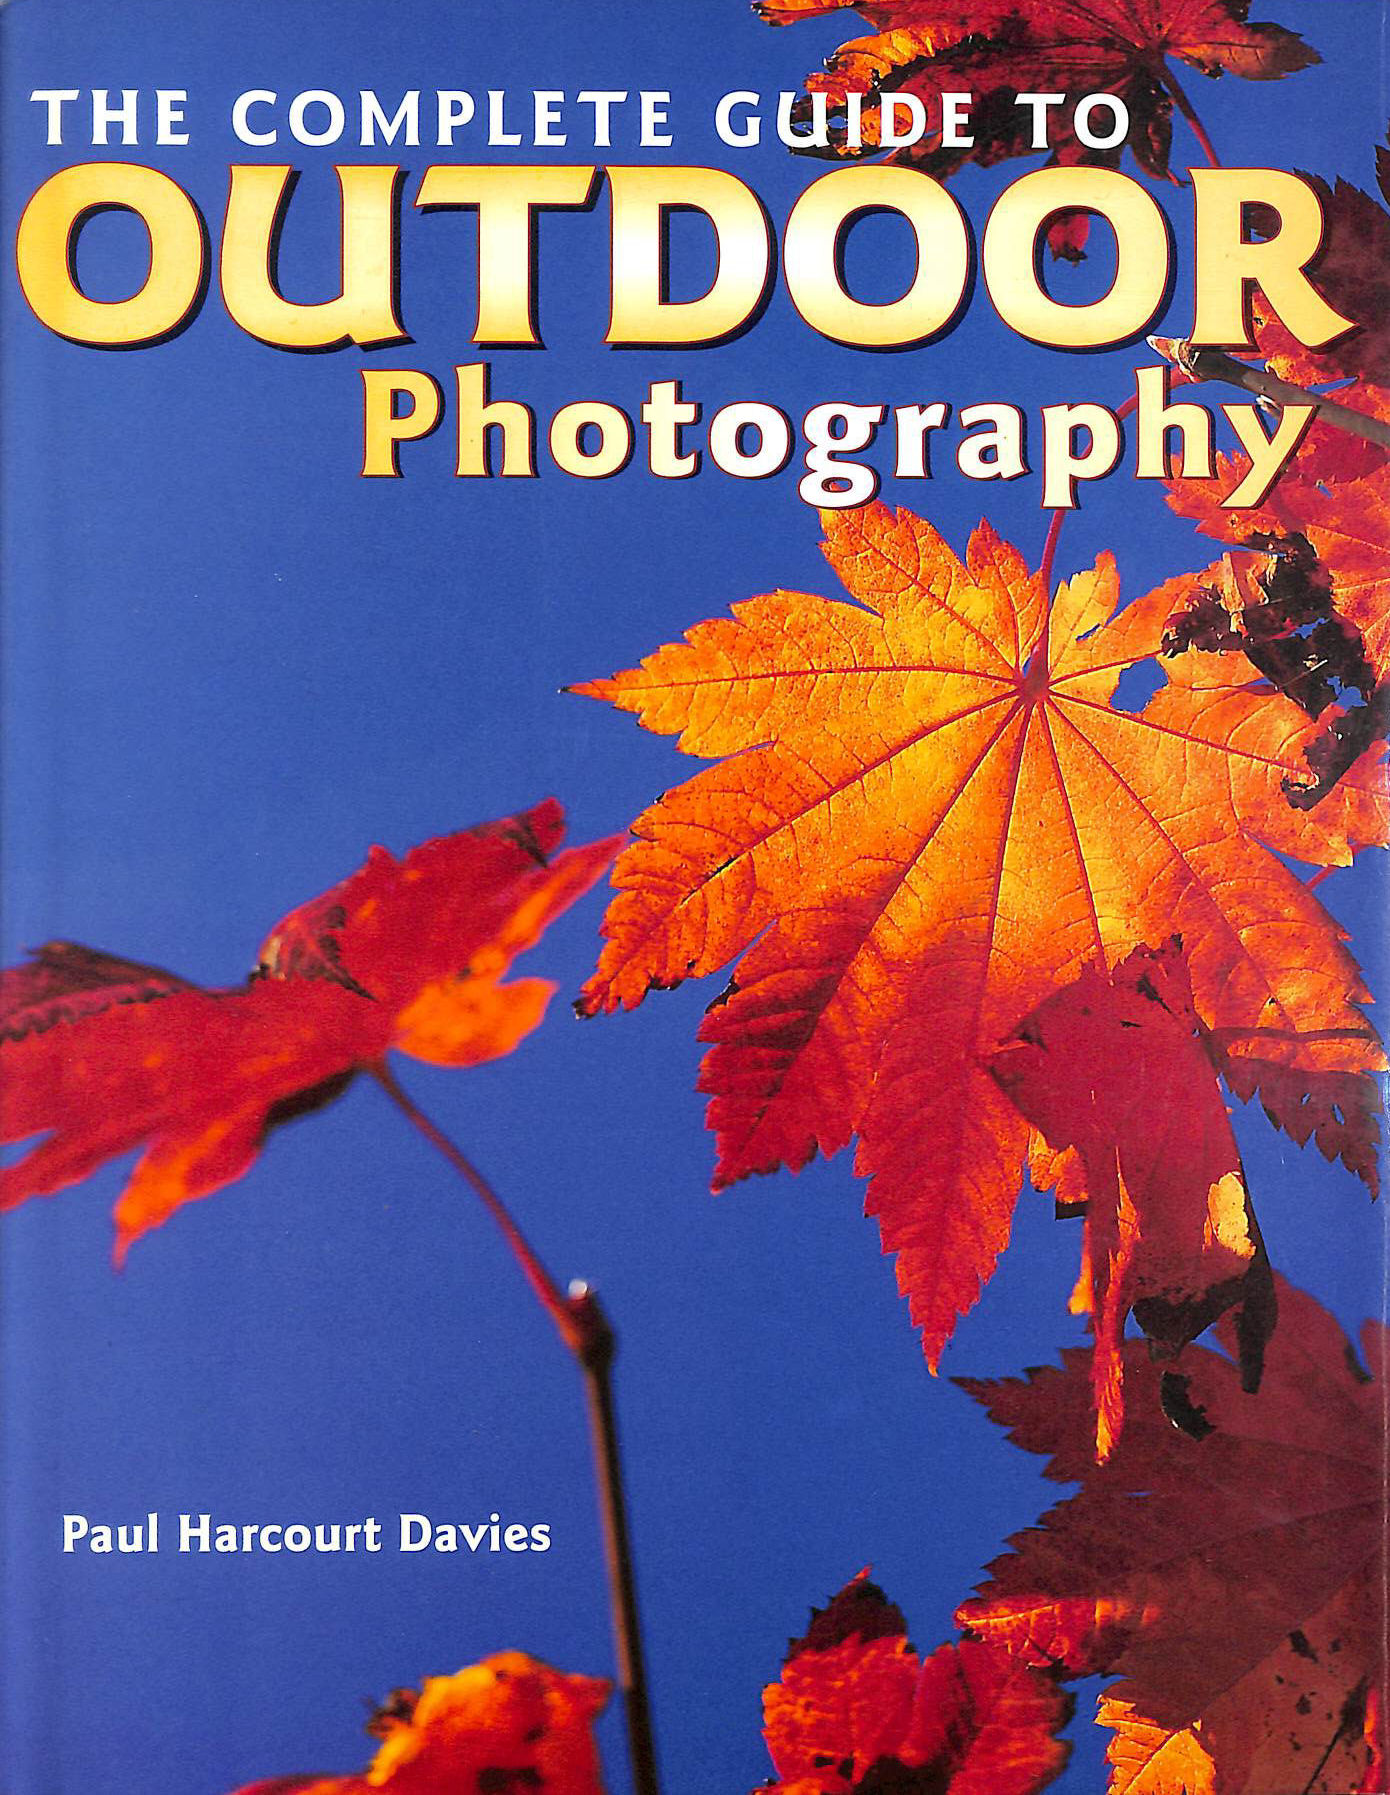 DAVIES, PAUL HARCOURT - The Complete Guide to Outdoor Photography